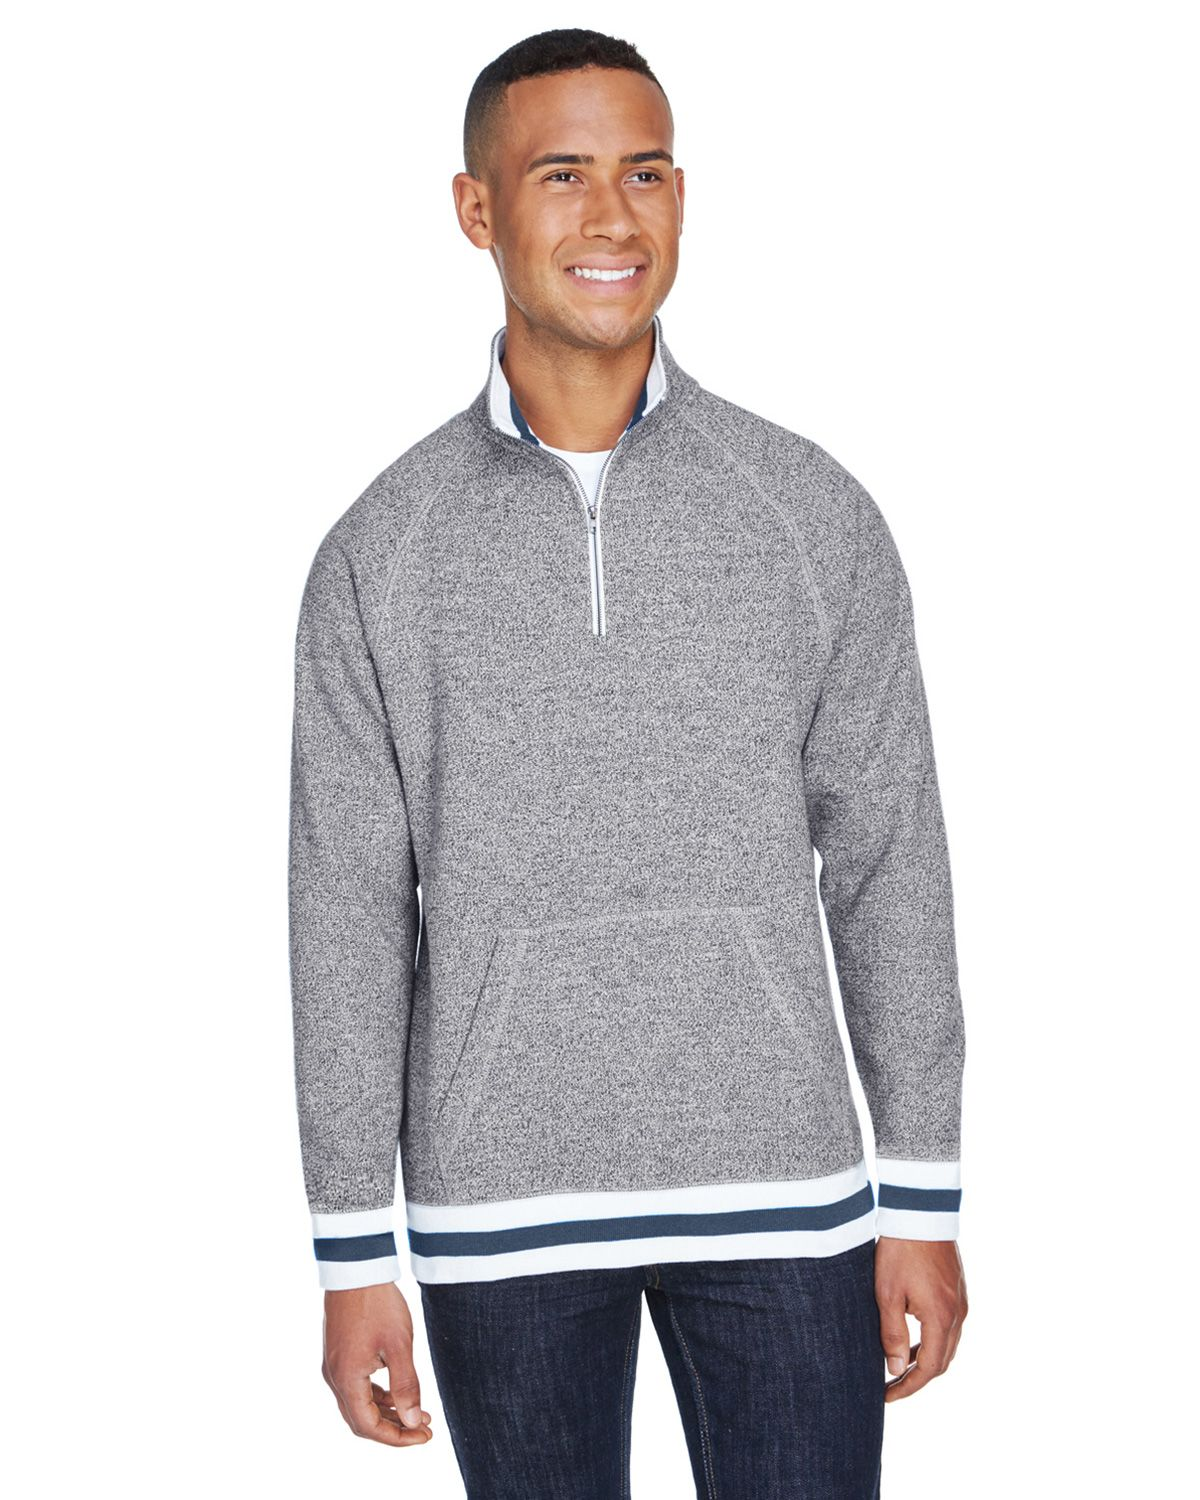 J America JA8703 Adult Peppered Fleece Quarter-Zip - Pepper Navy - S from J America